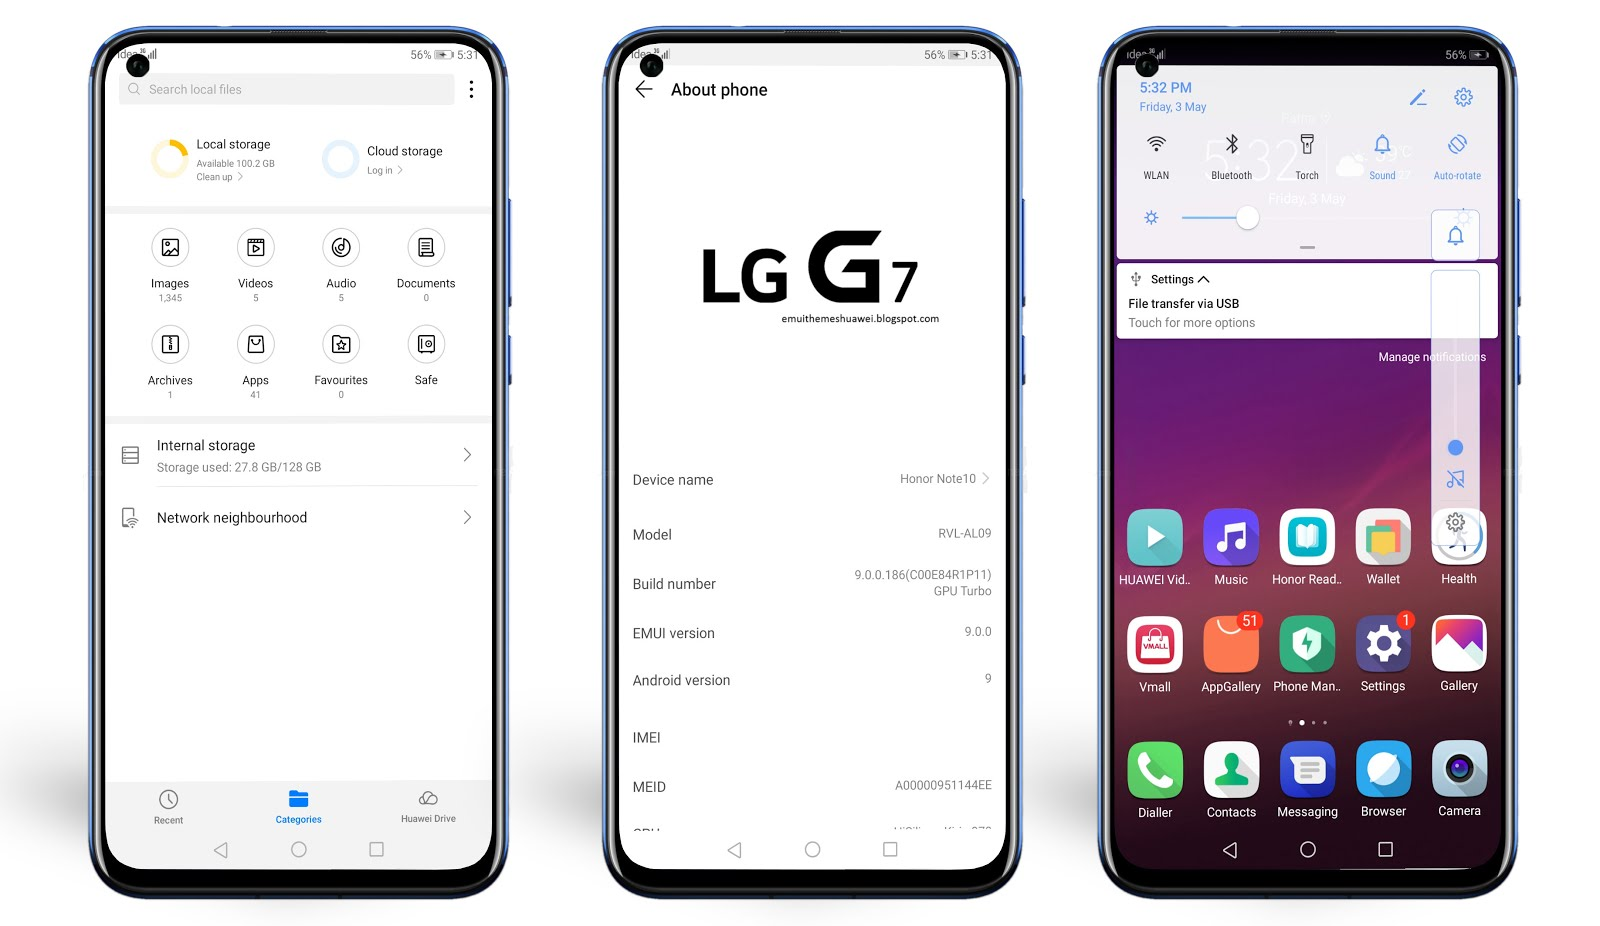 LG G7 EMUI Theme for EMUI 5/8/9 || Must Try - Emui Themes